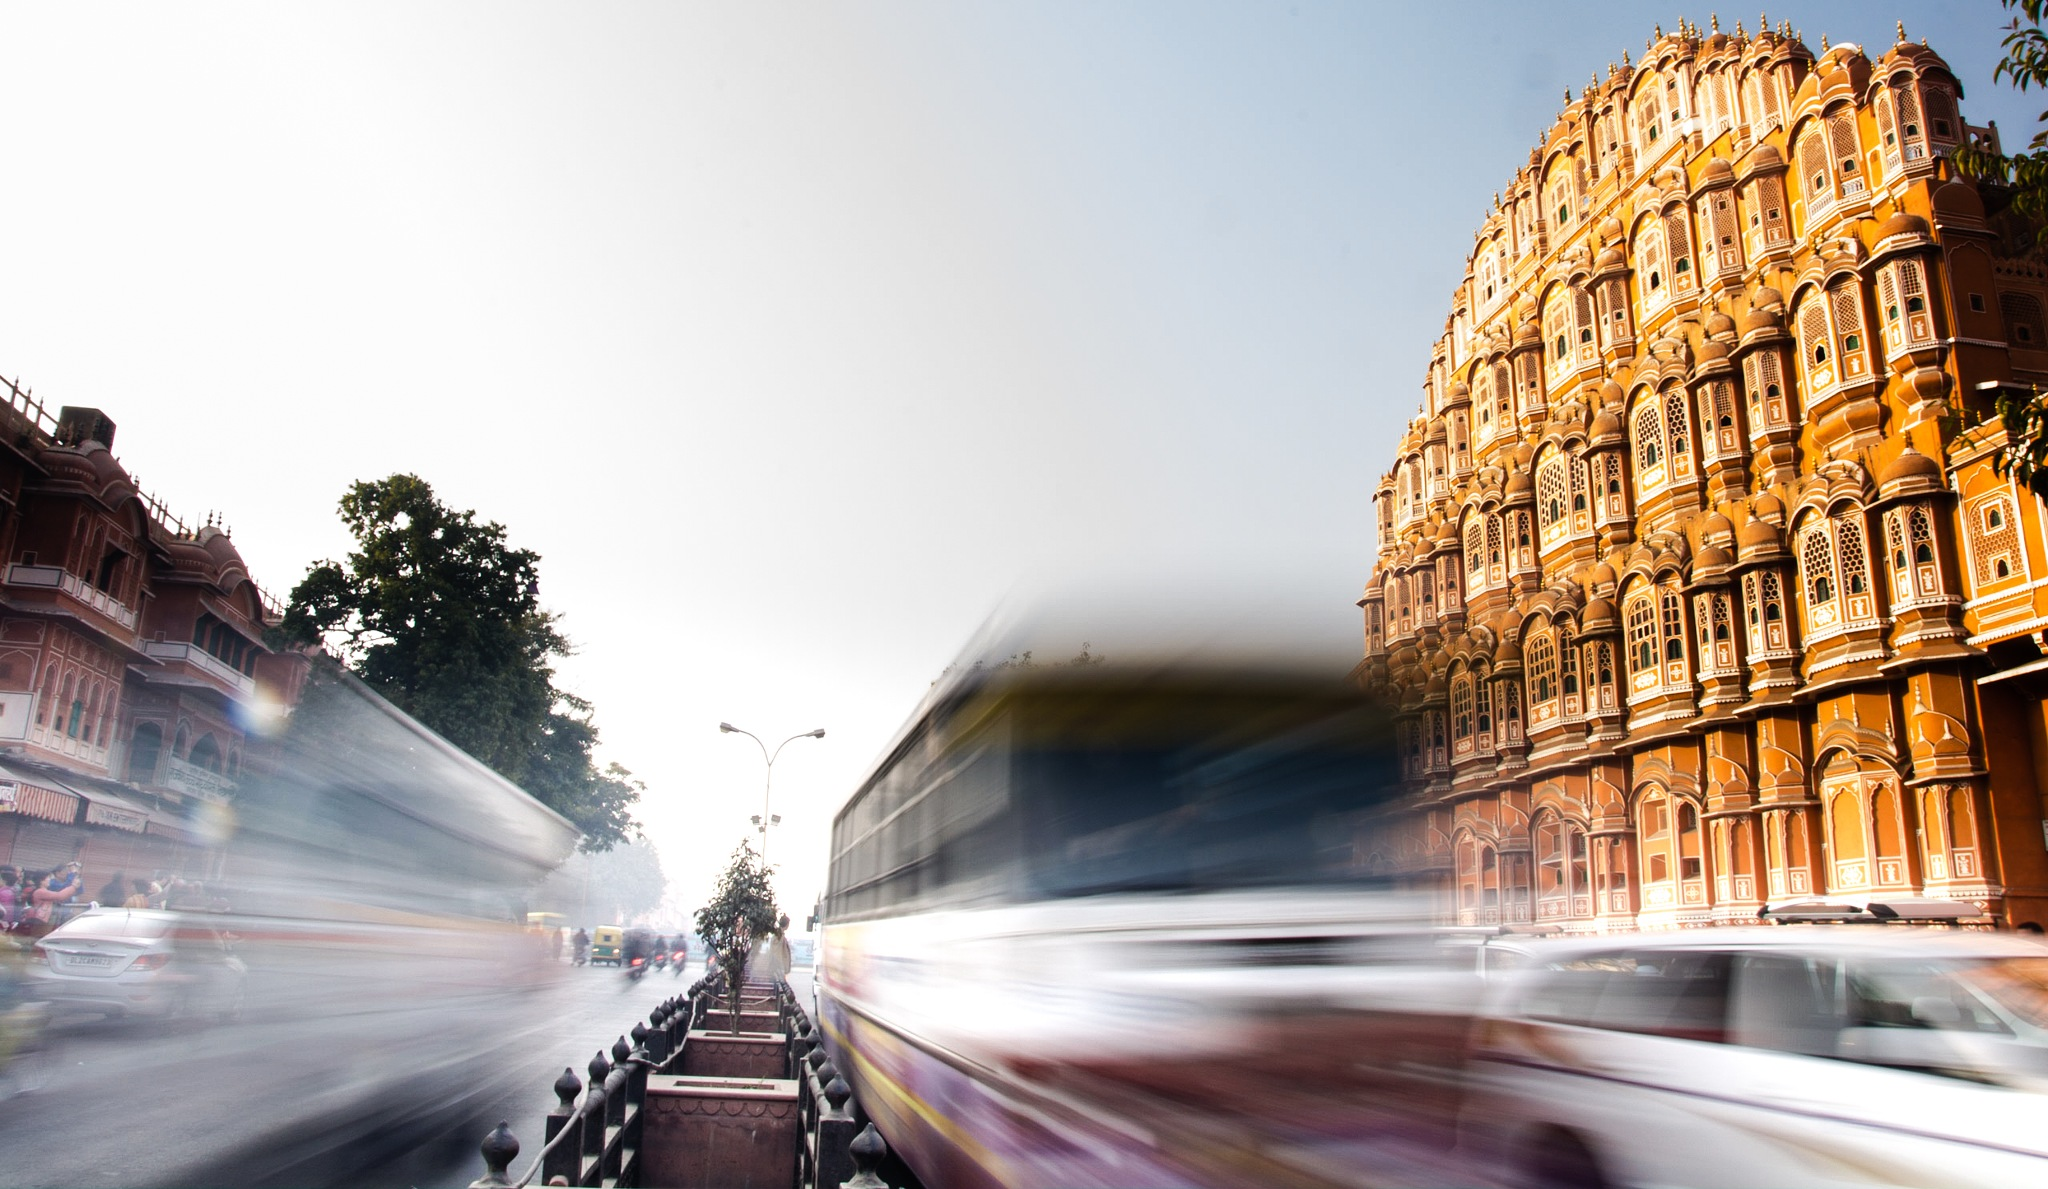 hawa mahal by photography by a rookie